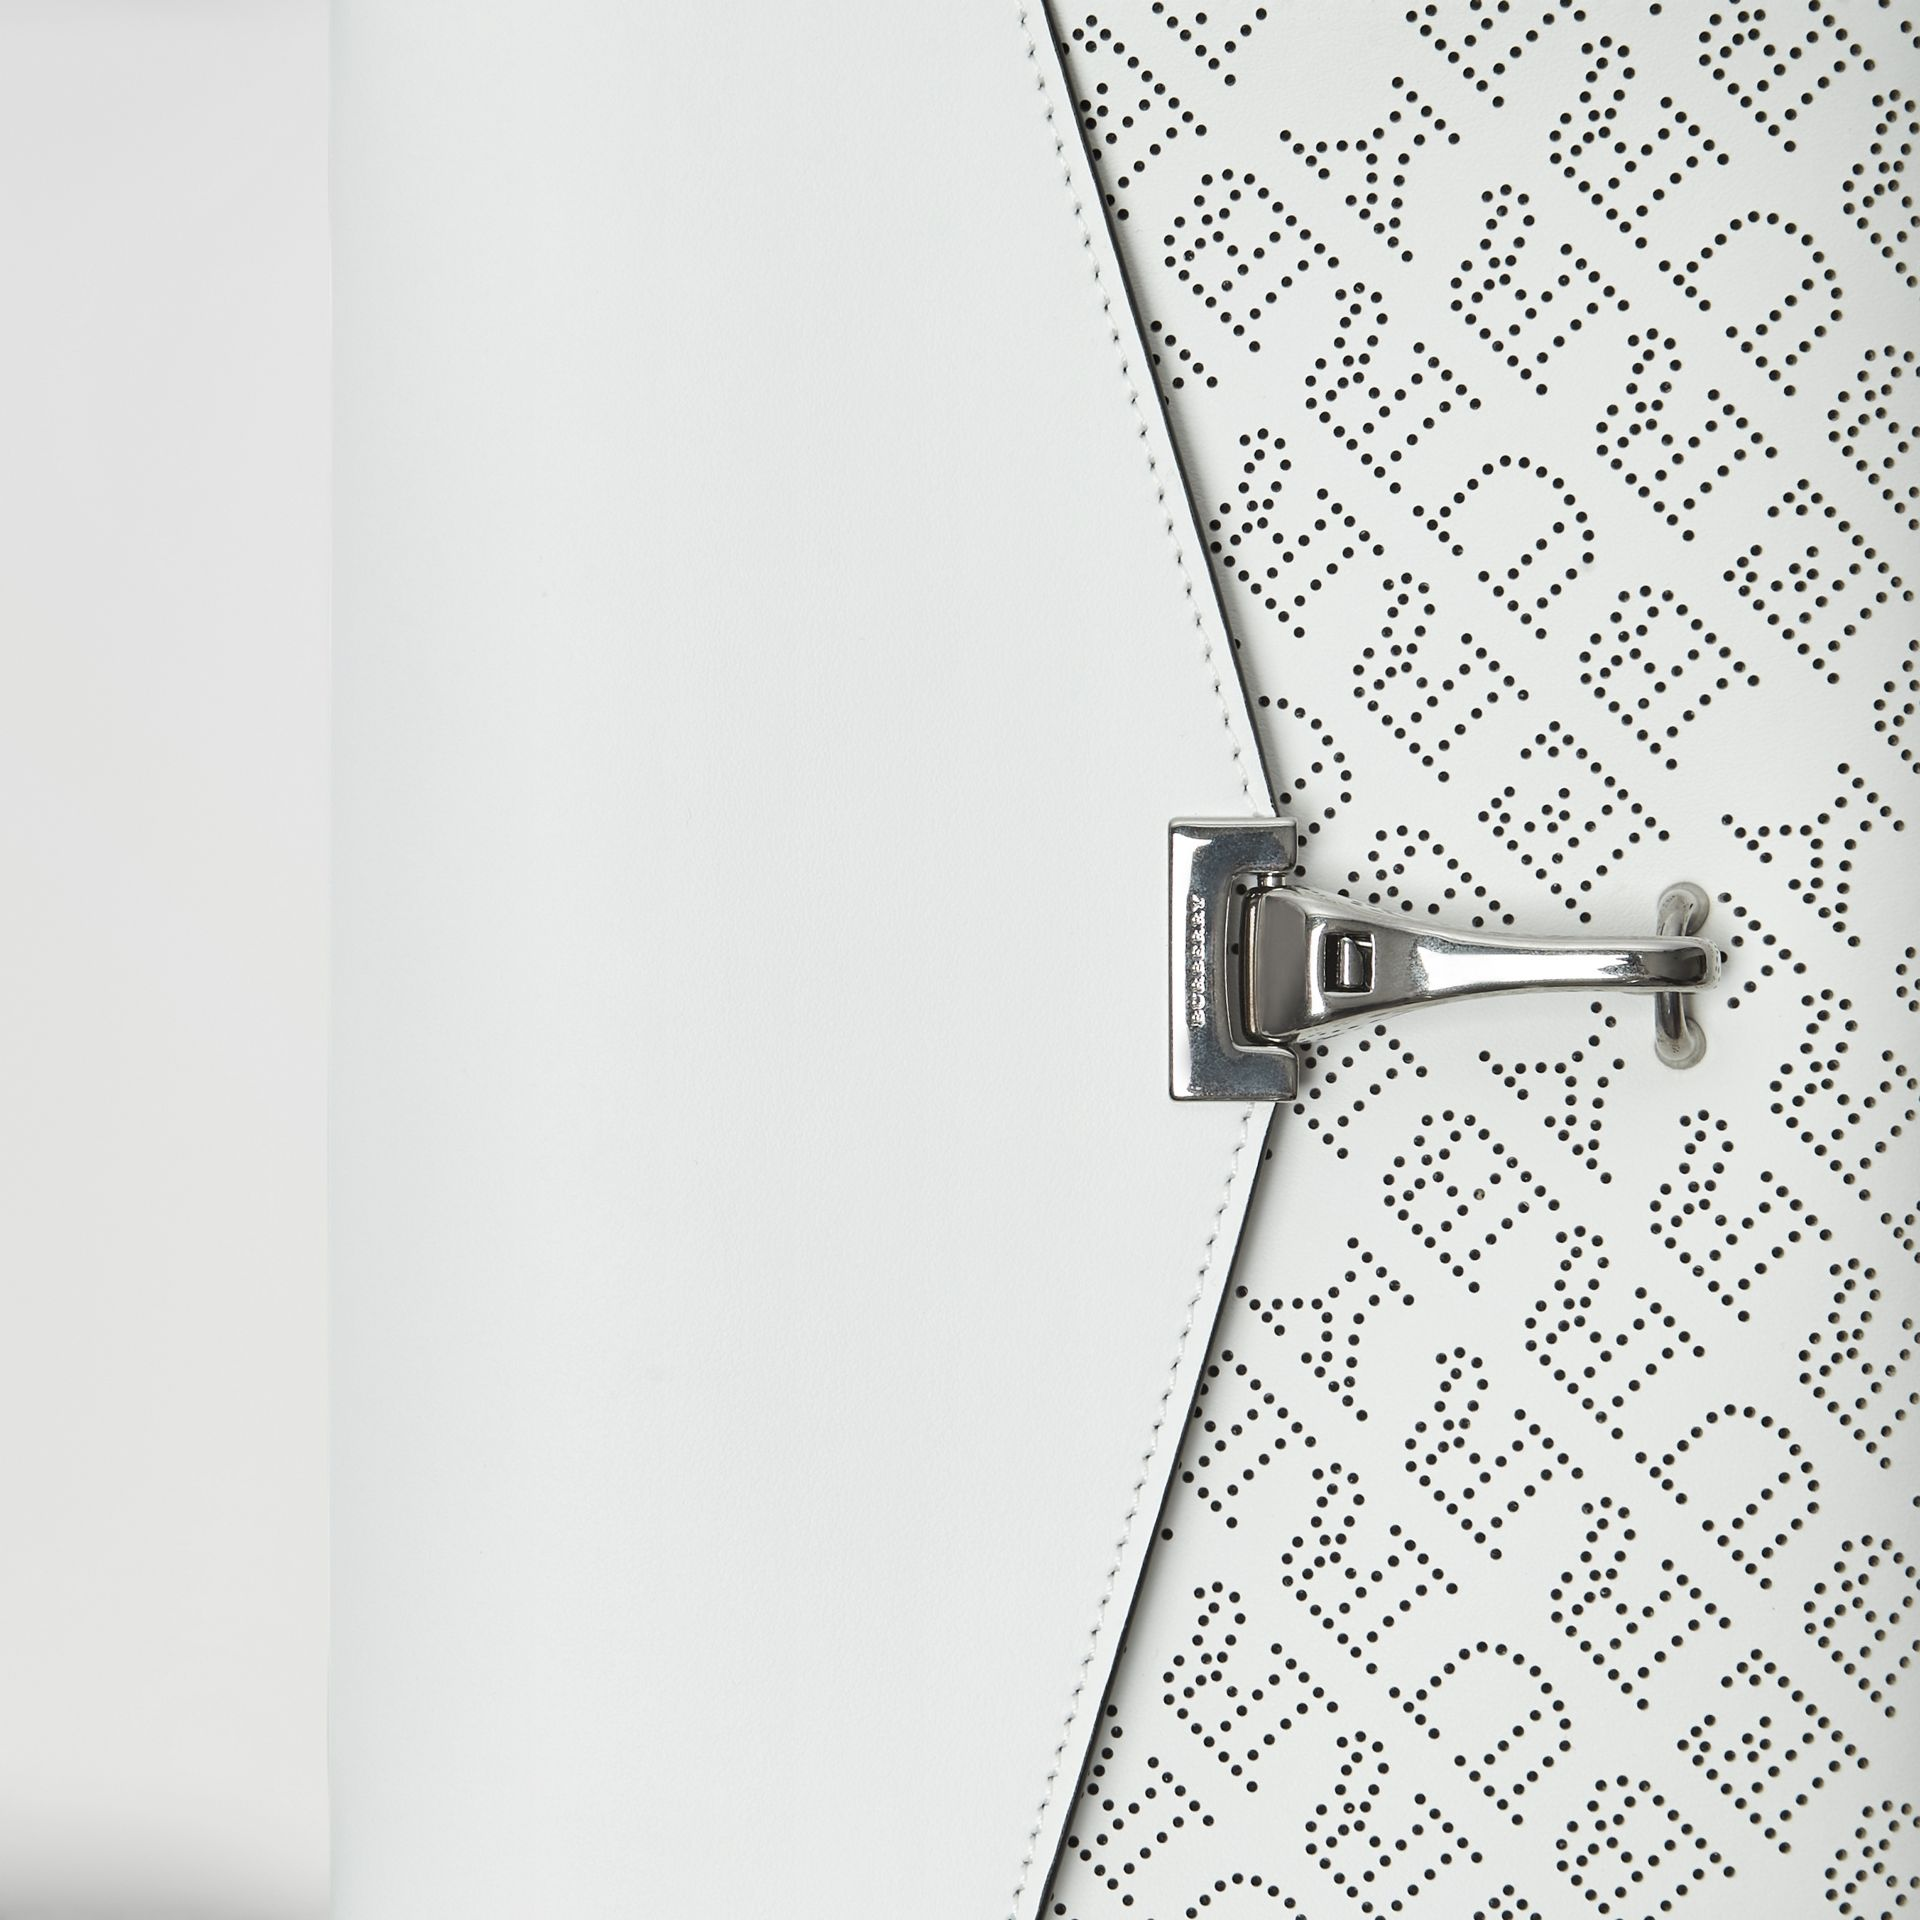 Small Perforated Logo Leather Crossbody Bag in Chalk White - Women | Burberry Australia - gallery image 1